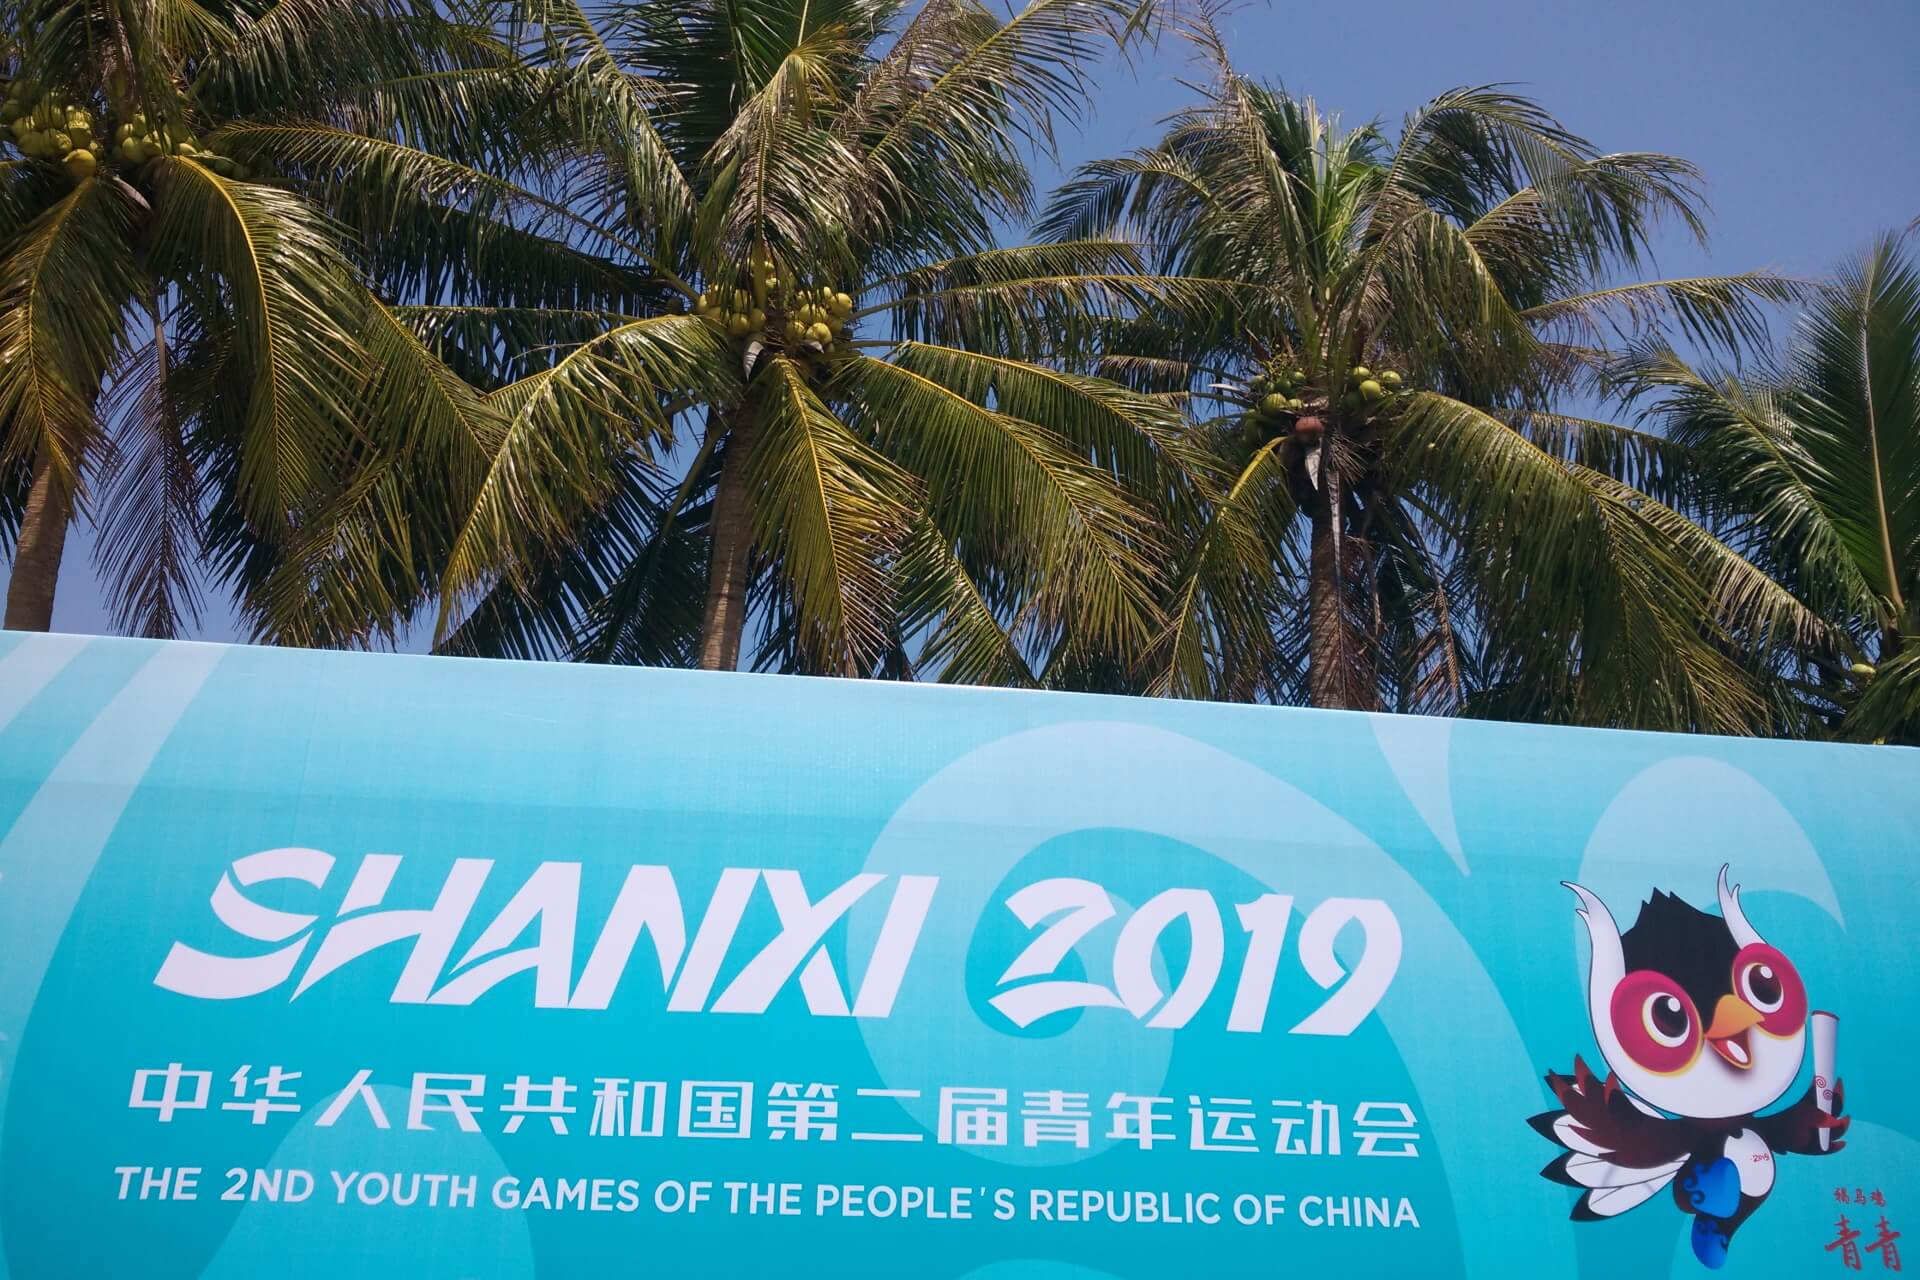 The 2nd Youth Games of the People's Republic of China